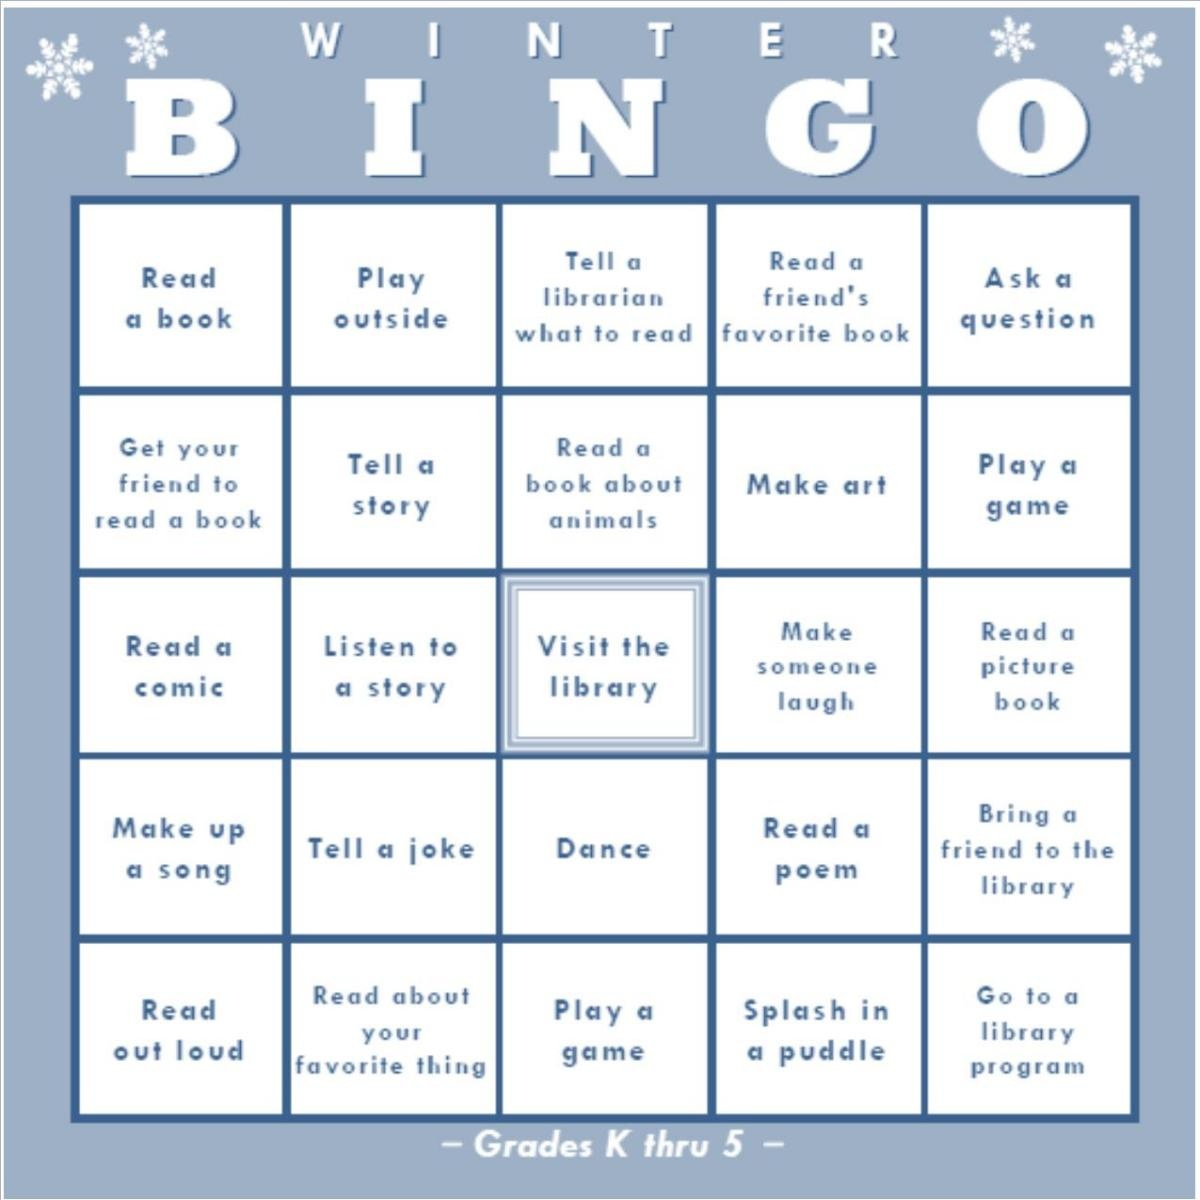 Winter Bingo @ Your Library! | Oakland Public Library - Winter Bingo Cards Free Printable